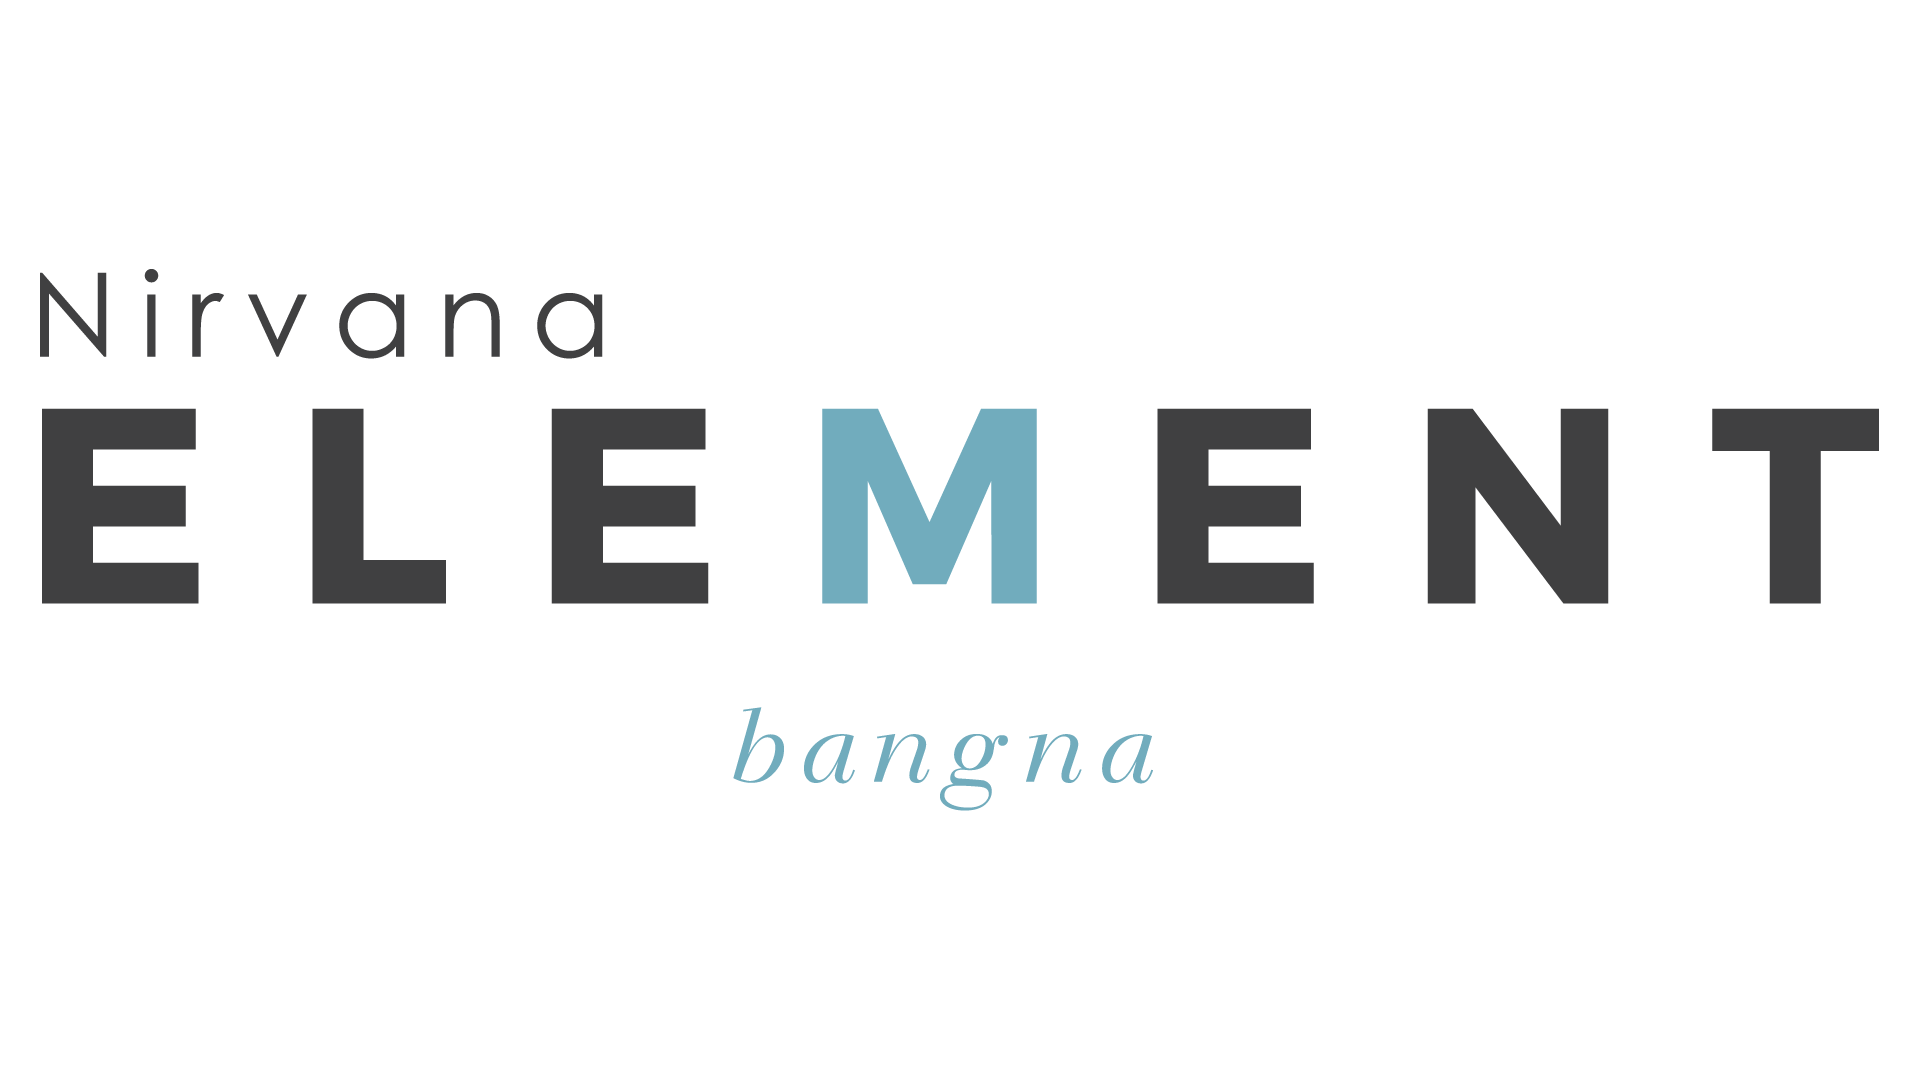 Nirvana ELEMENT Bangna-Nirvana ELEMENT Bangna Logo